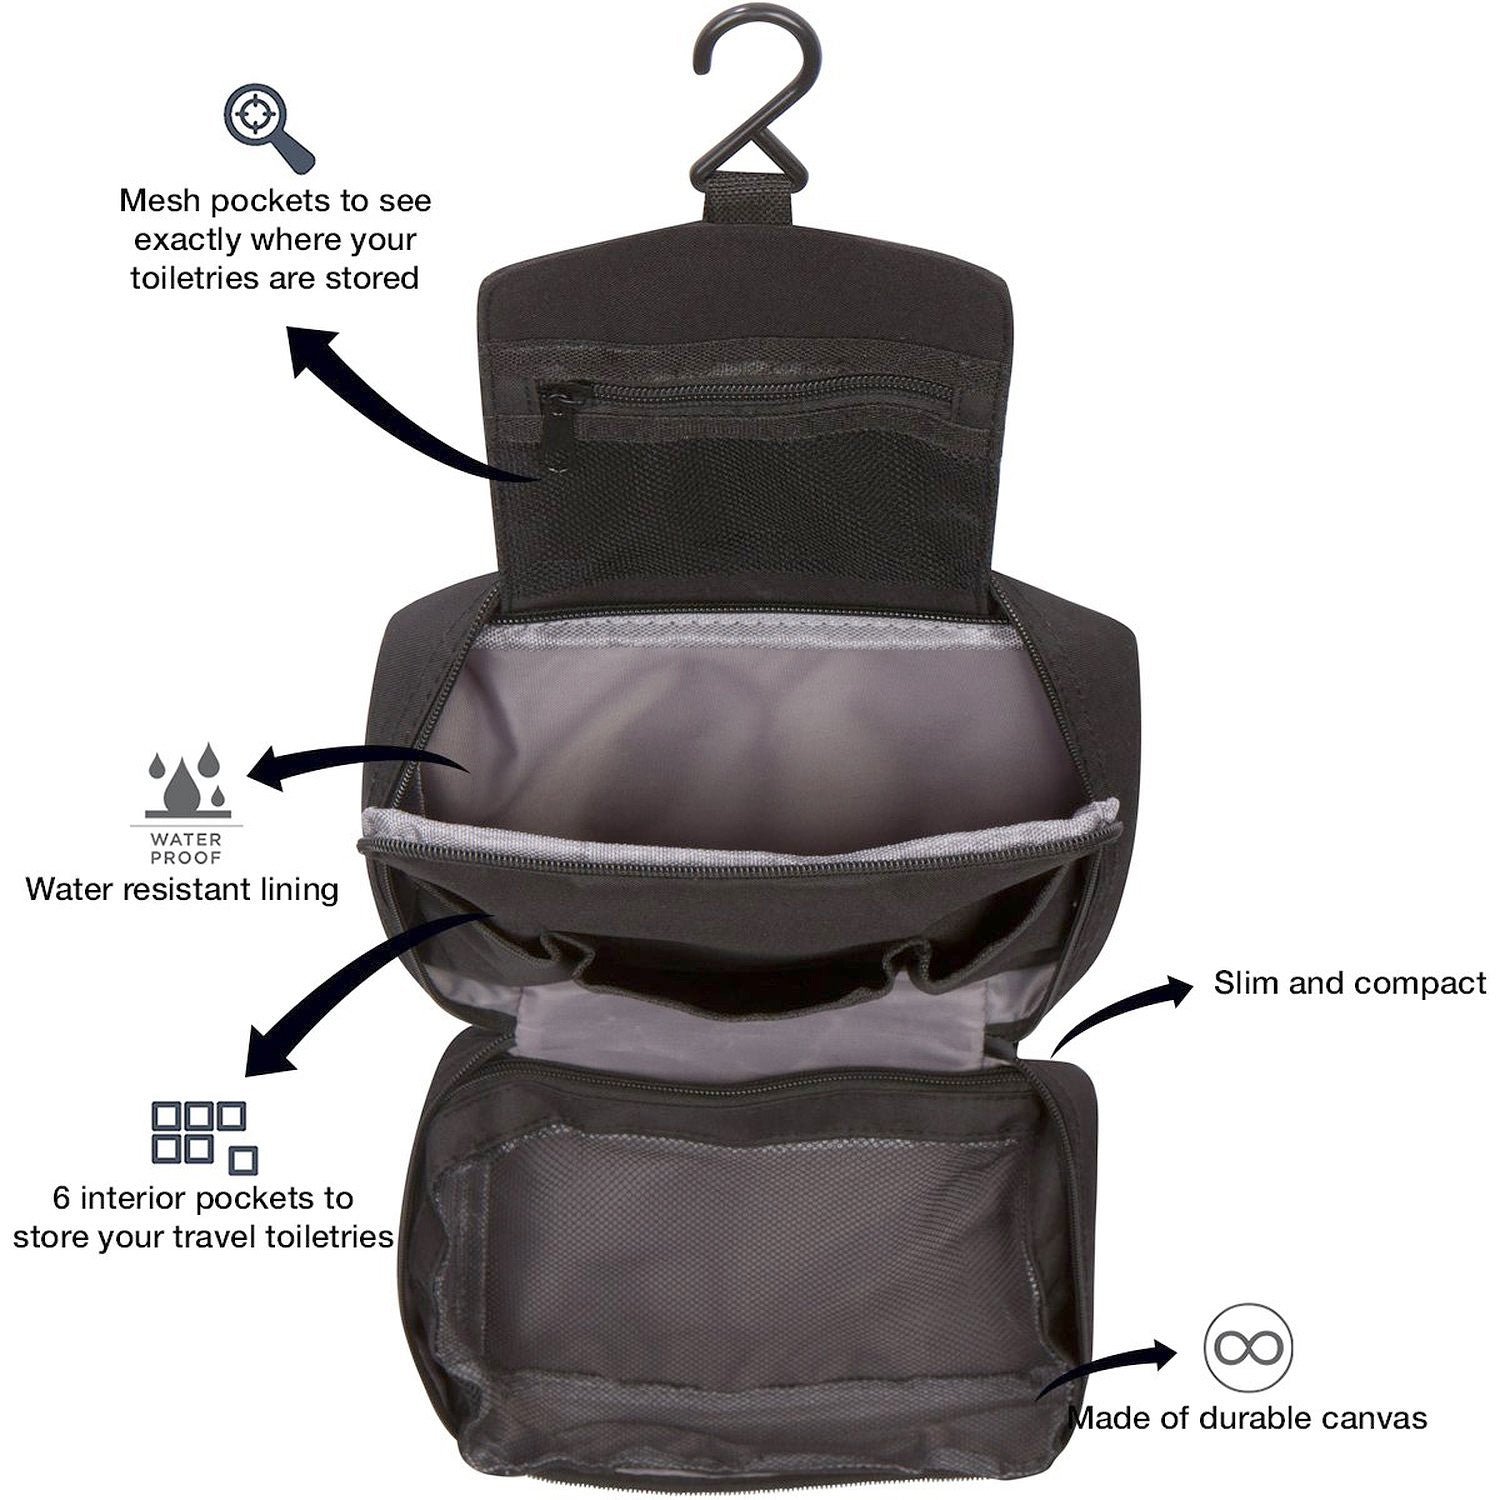 GOSO Mens Toiletry Bag Hanging Travel Bag For Men With 6 Compartment ... c0752c7e459b1